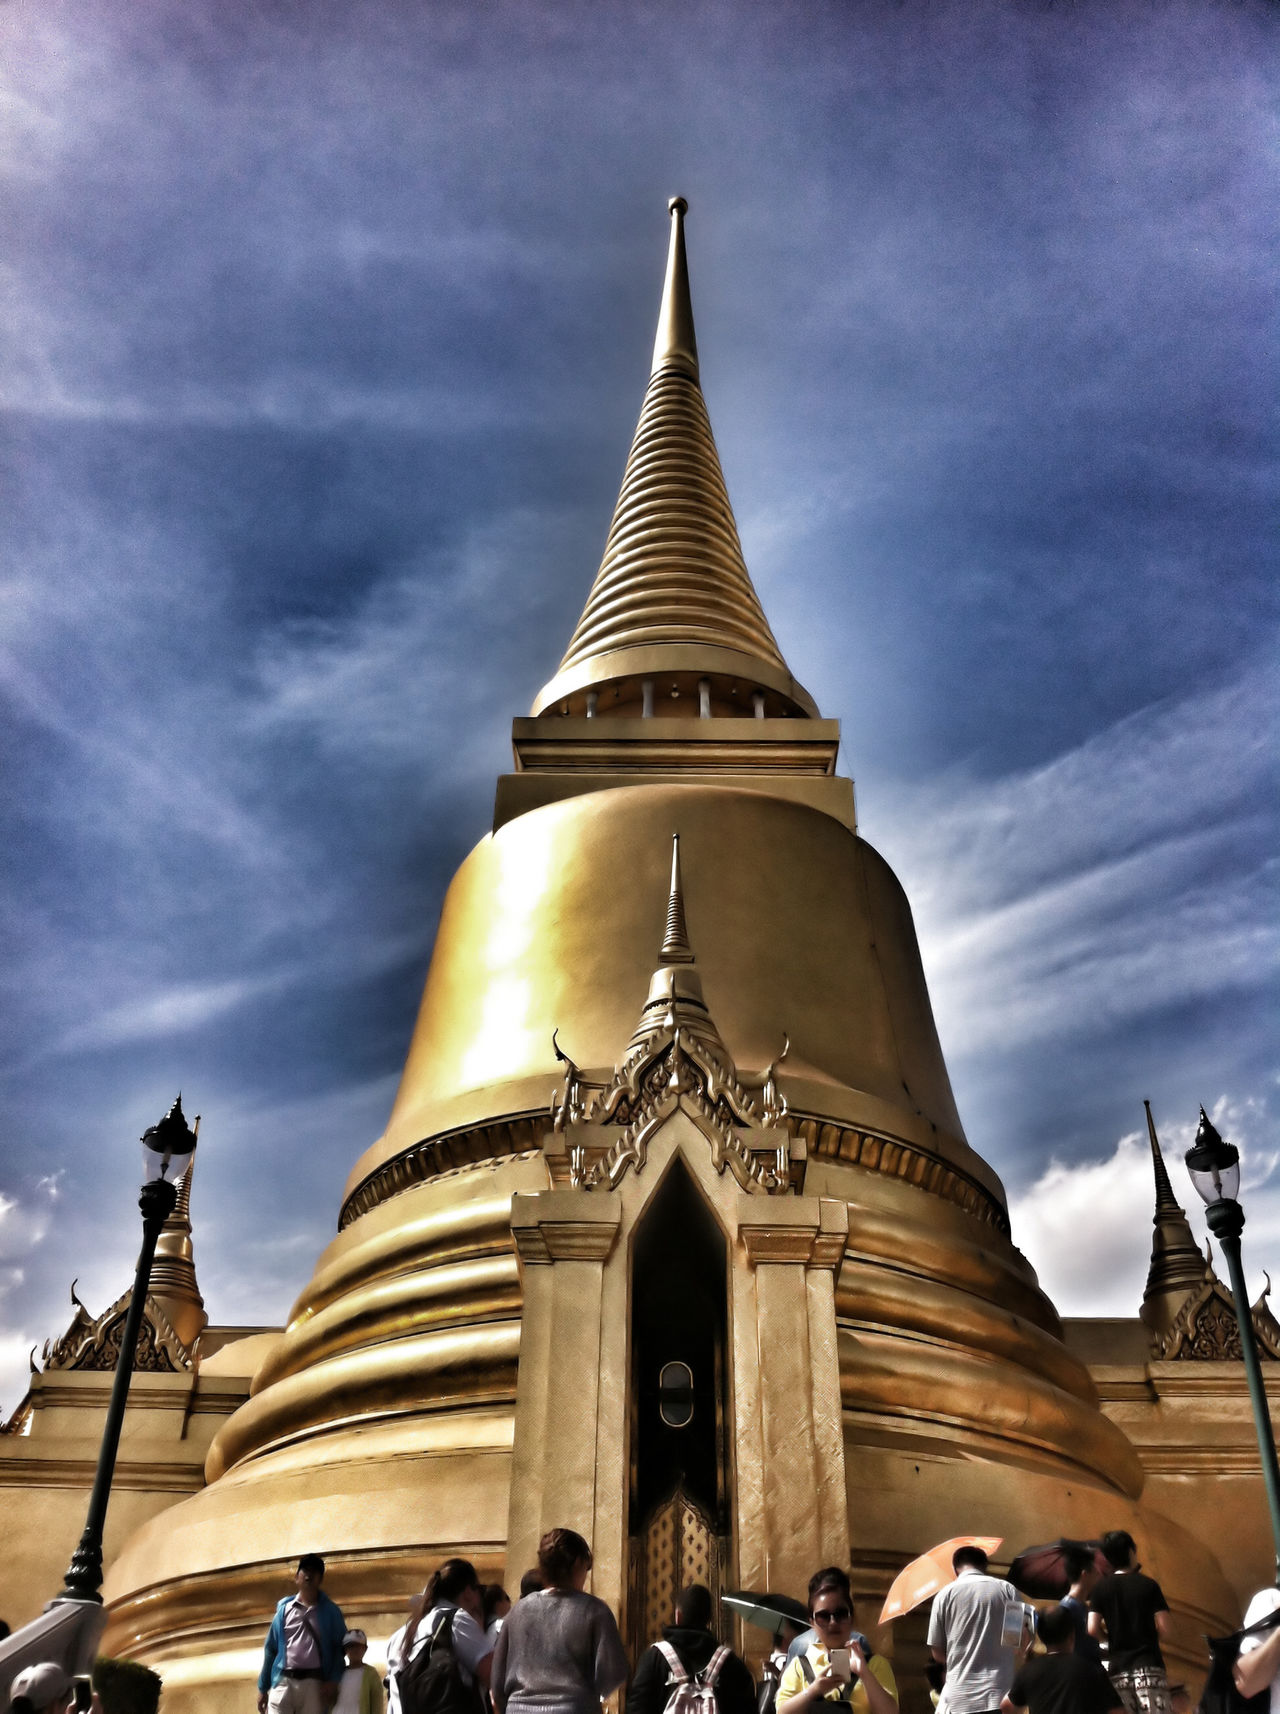 Wat Phra Kaeo Bangkok Thailand Ancient Architecture Buddhism Building Exterior Cloud - Sky History Old Pagoda People Place Of Worship Religion Royal Sky Temple Temple Of Royal Thai Architecture Thai Art Tourism Travel Destinations Wat Phra Kaeo